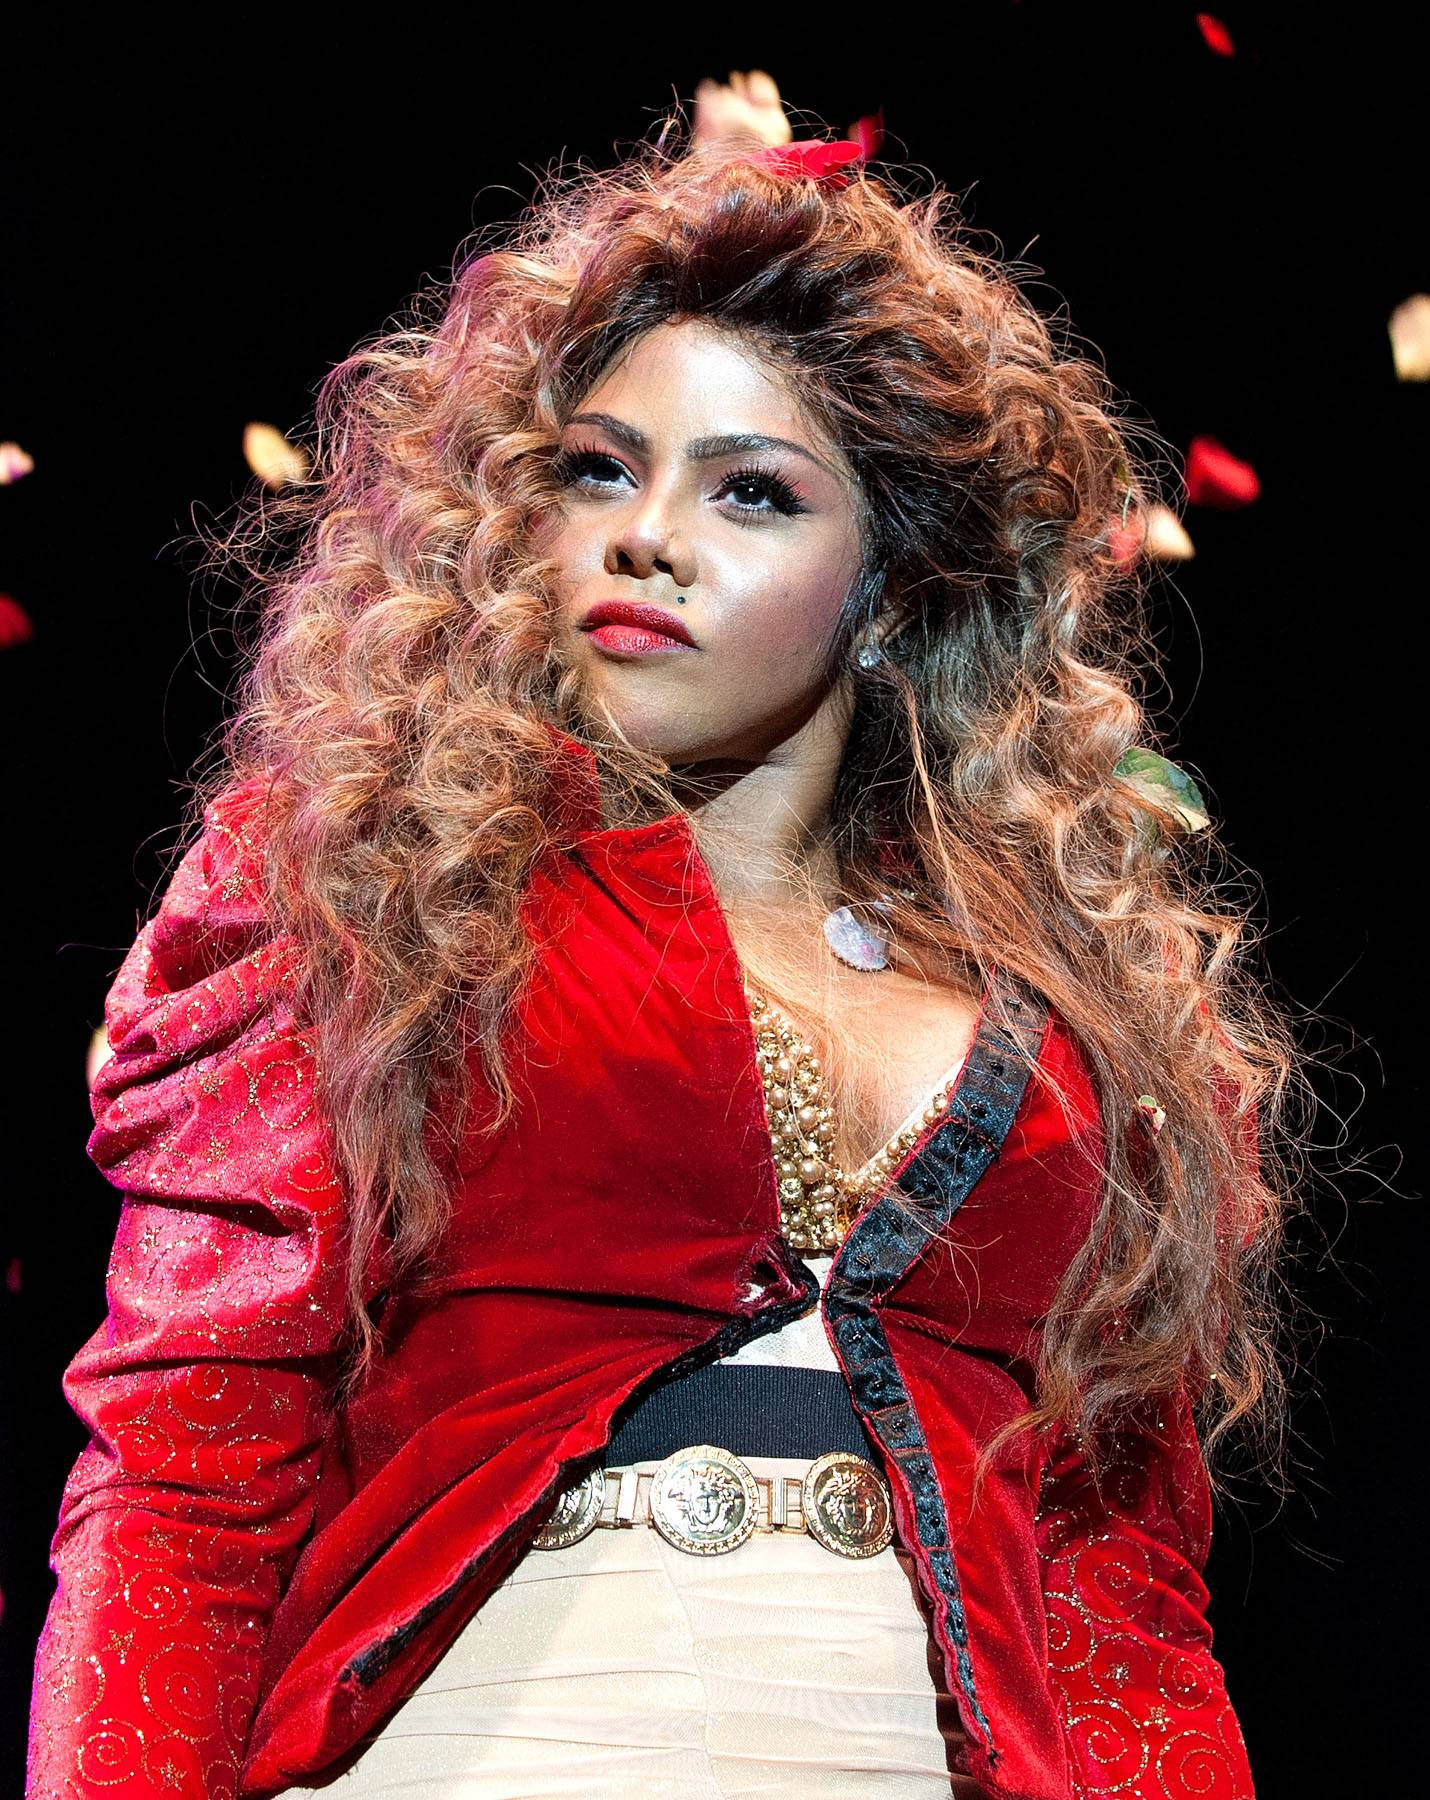 """Lil Kim (@LilKim) - TWEET: """"For those of u who have been brainwashed by the fraud ...Let's open our eyes now people ...the clone is not bringing ladies out for the luv.""""   Lil Kim tweets subliminally about Nicki Minaj ahead of the """"Starships"""" singer's expected appearance at the Hot 97 Summer Jam 2012 concert.(Photo: D Dipasupil/FilmMagic)"""